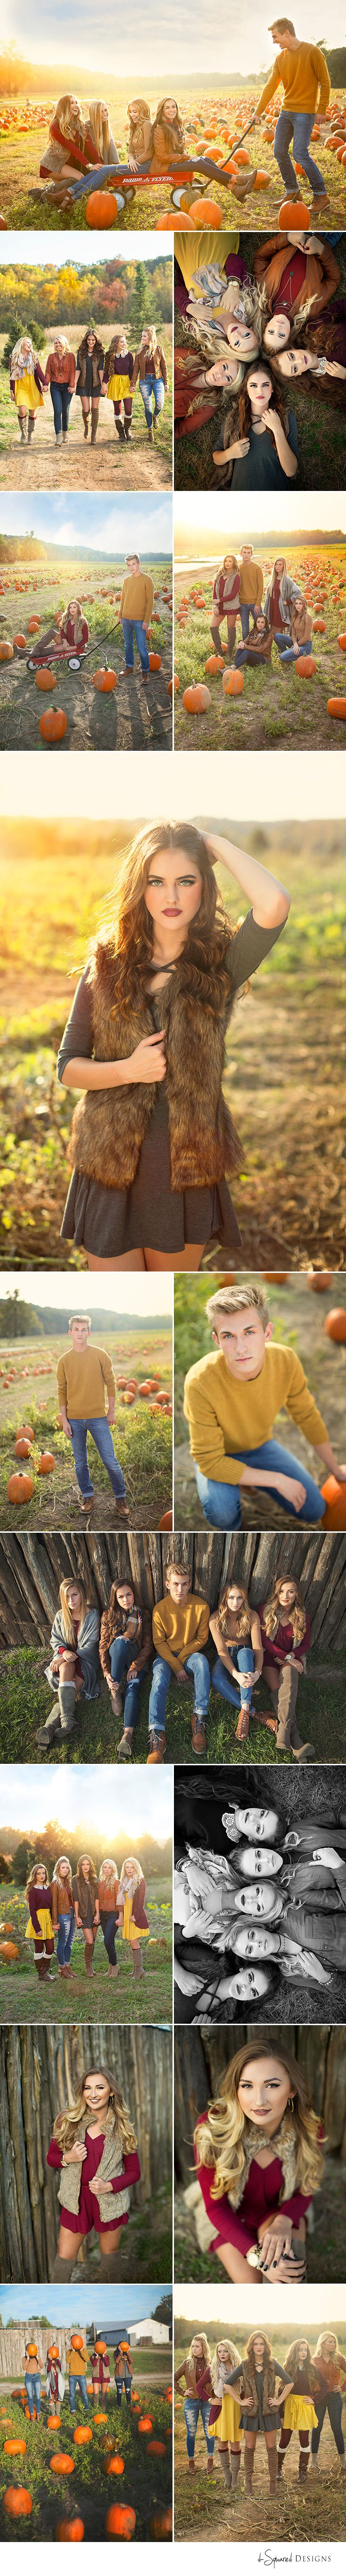 d-Squared Designs St. Louis, MO Senior Photography. Senior model team. Senior model inspiration. Fall shoot. Pumpkin patch. Senior pumpkin inspiration. Girl posing. Group posing. Red flyer wagon idea.